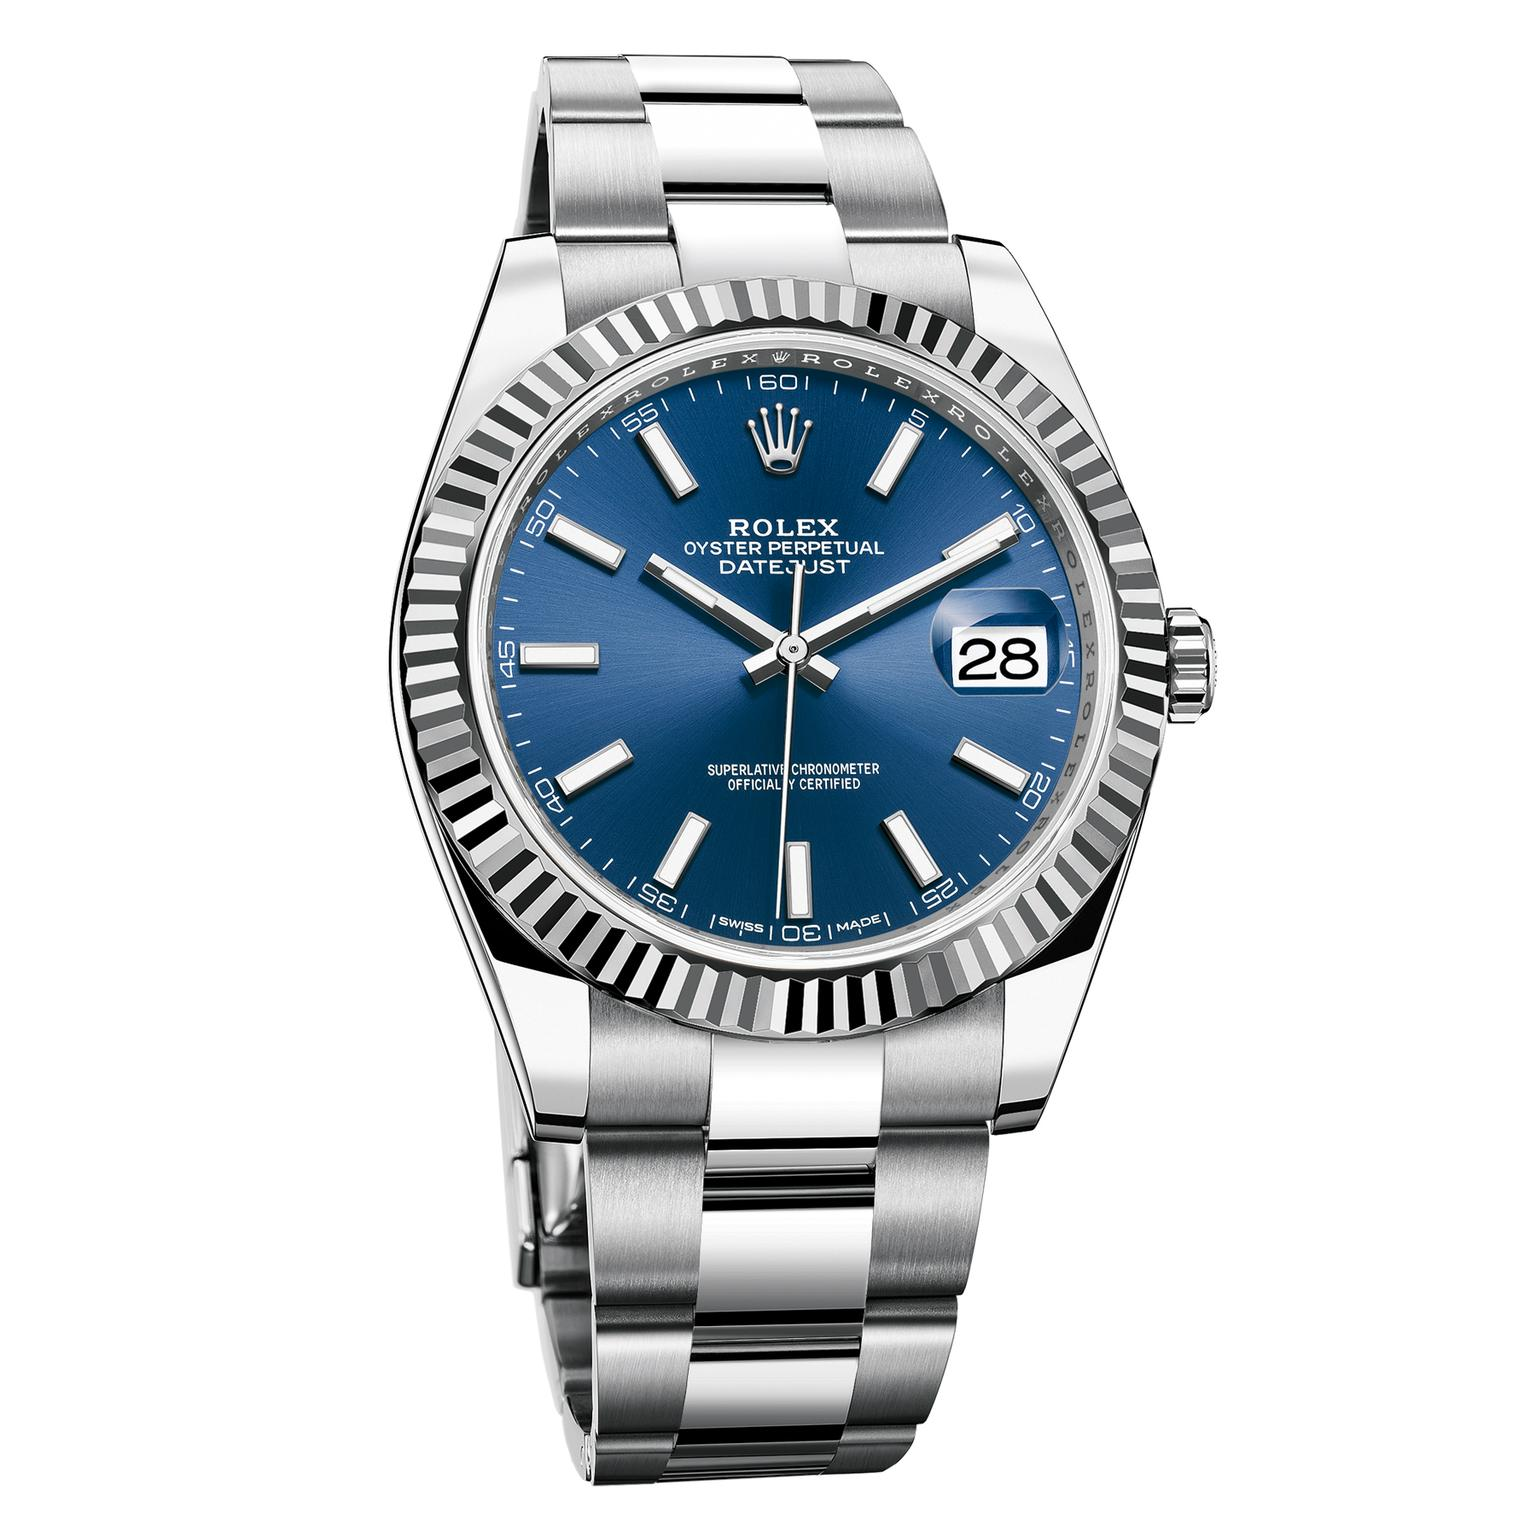 Rolex Datejust 41 watch